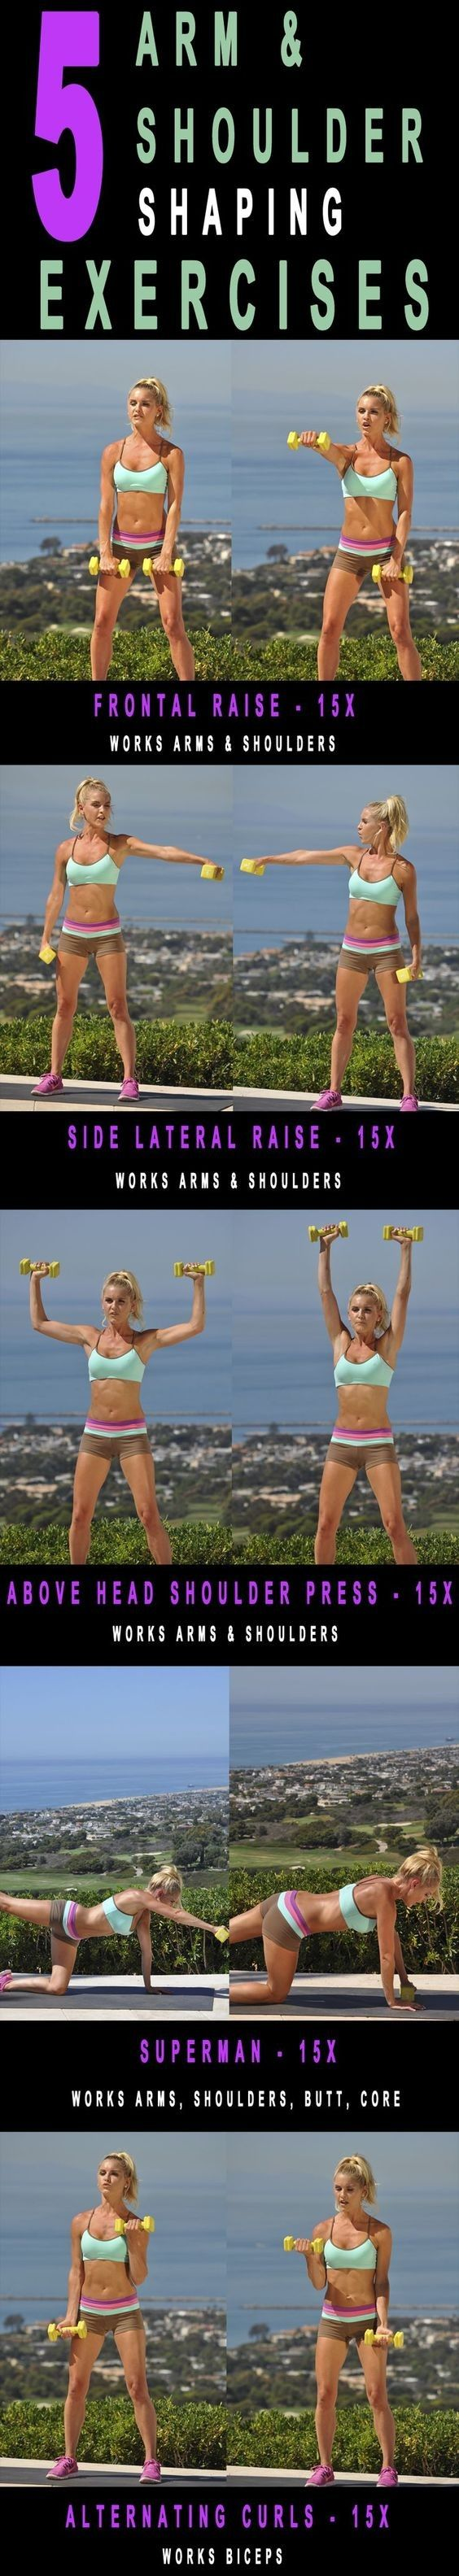 5 Arm workout.. Get that core nice and tight for summer with these fitness moves!   #Workout - #Womens #Health #Exercises #Arm  #Fitness